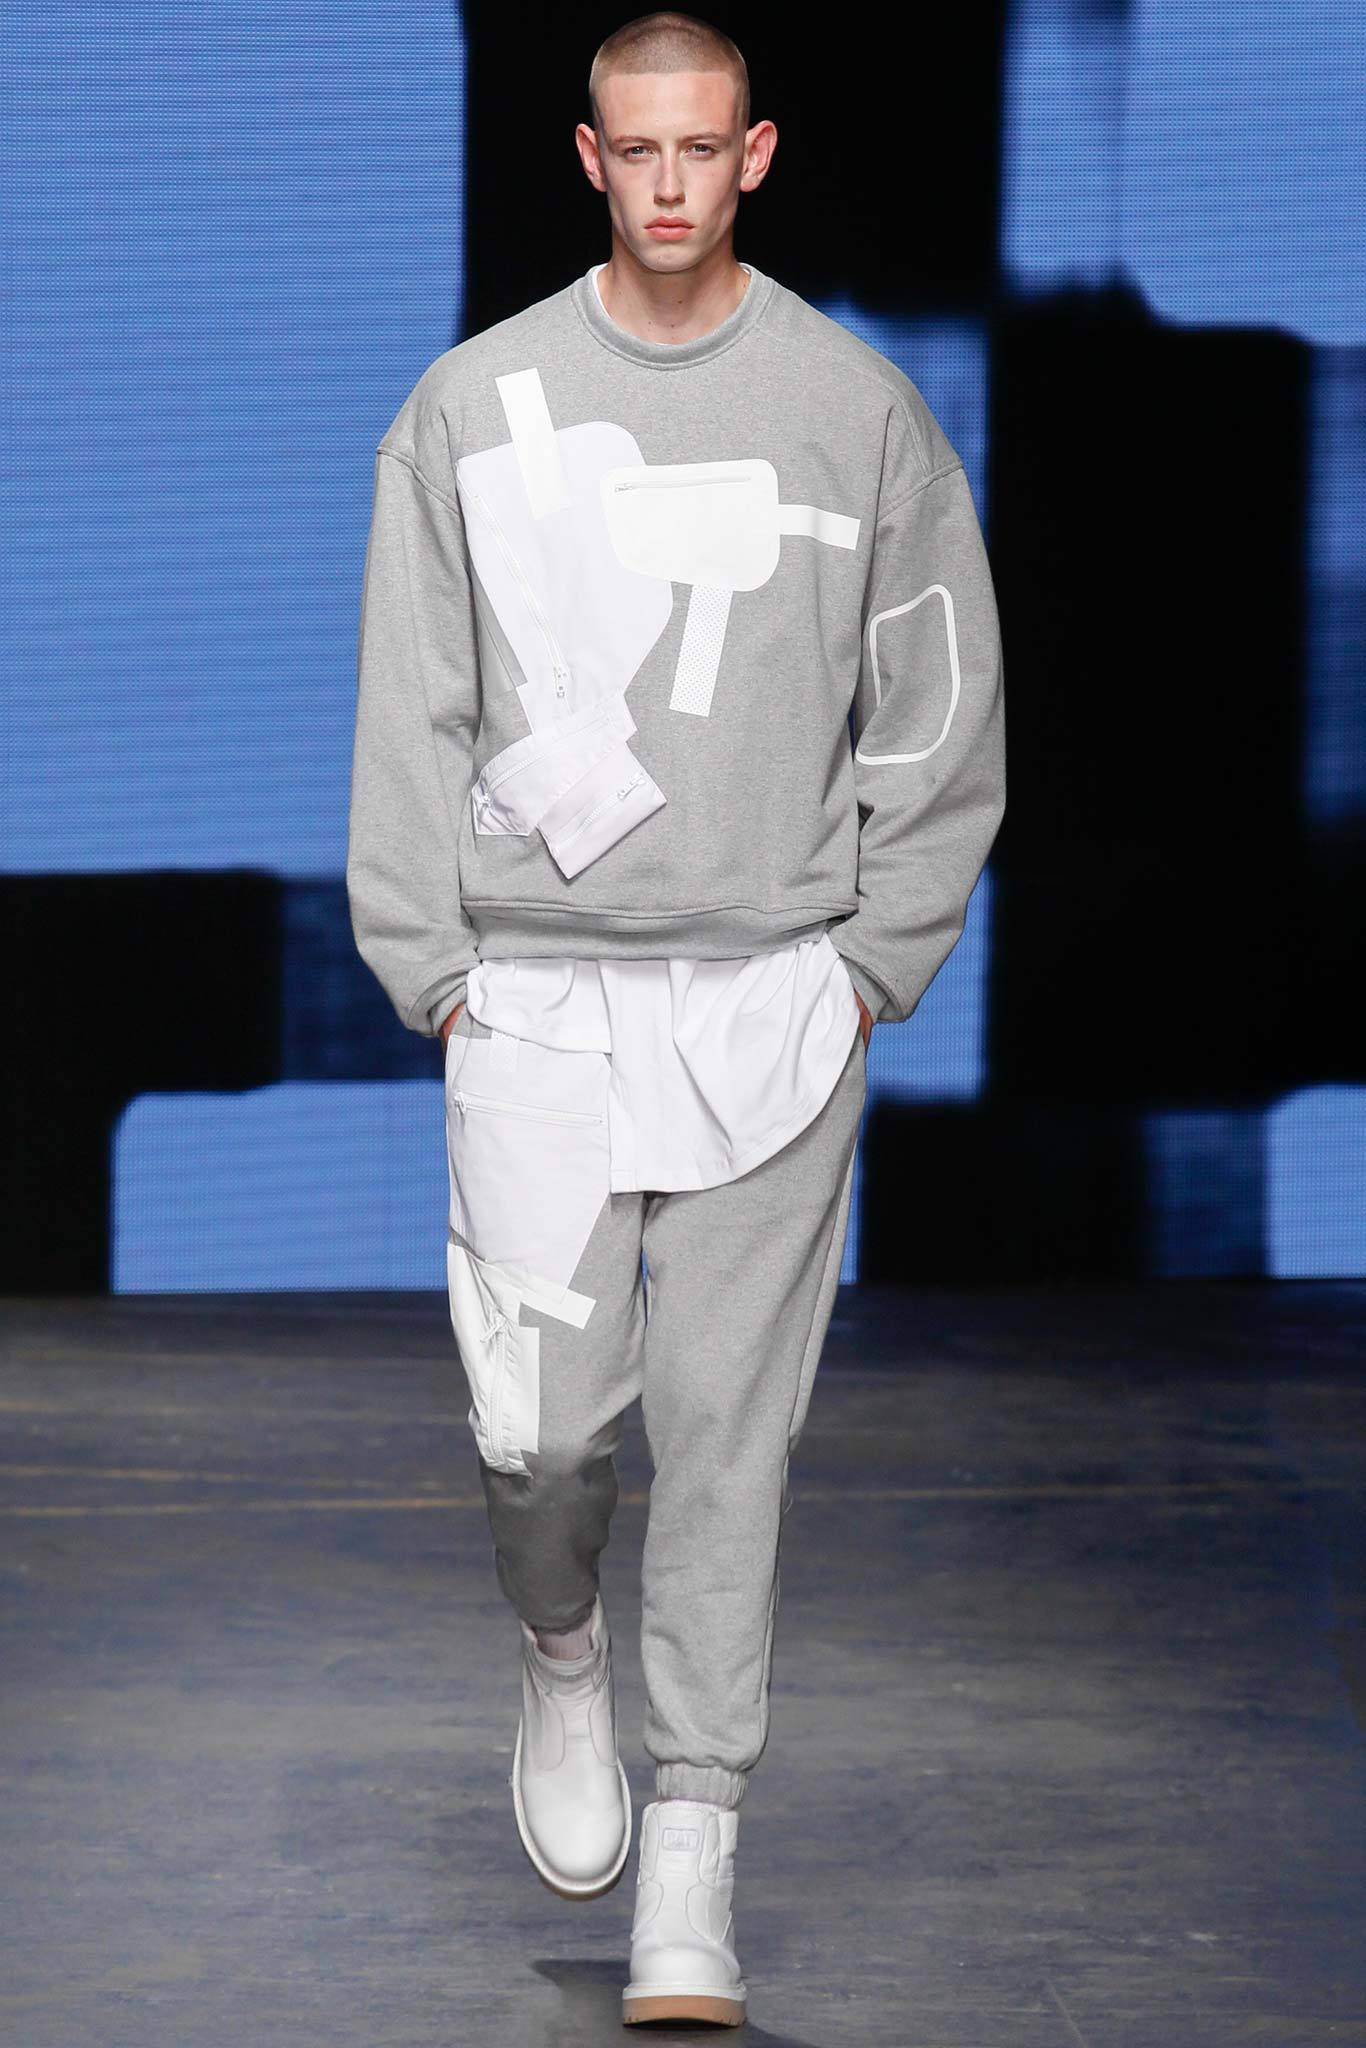 http://hypebeast.com/2014/6/christopher-shannon-2015-spring-summer-collection